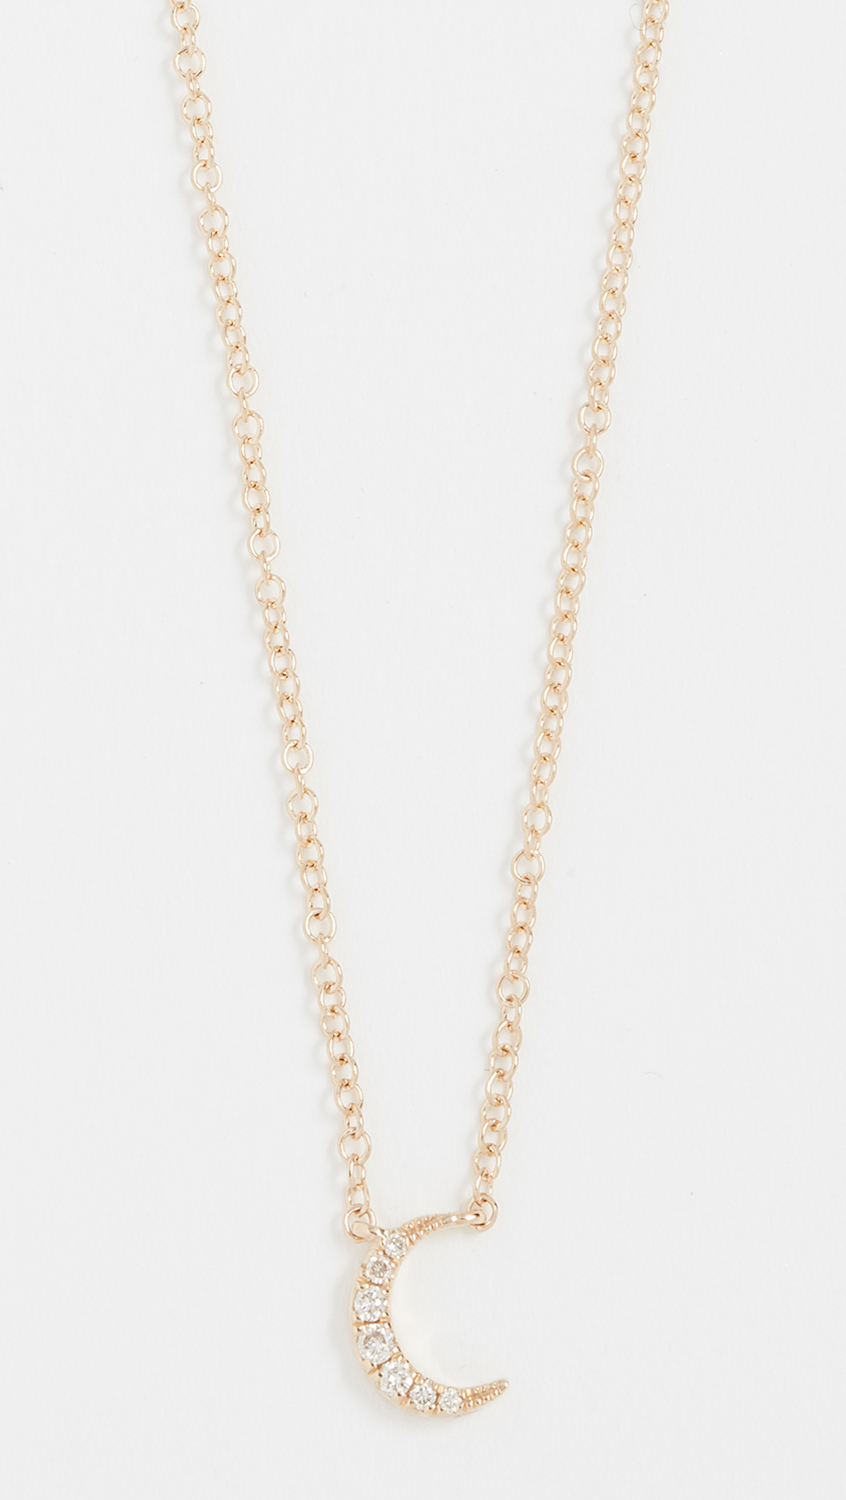 Gold and Diamond Crescent Mood Necklace